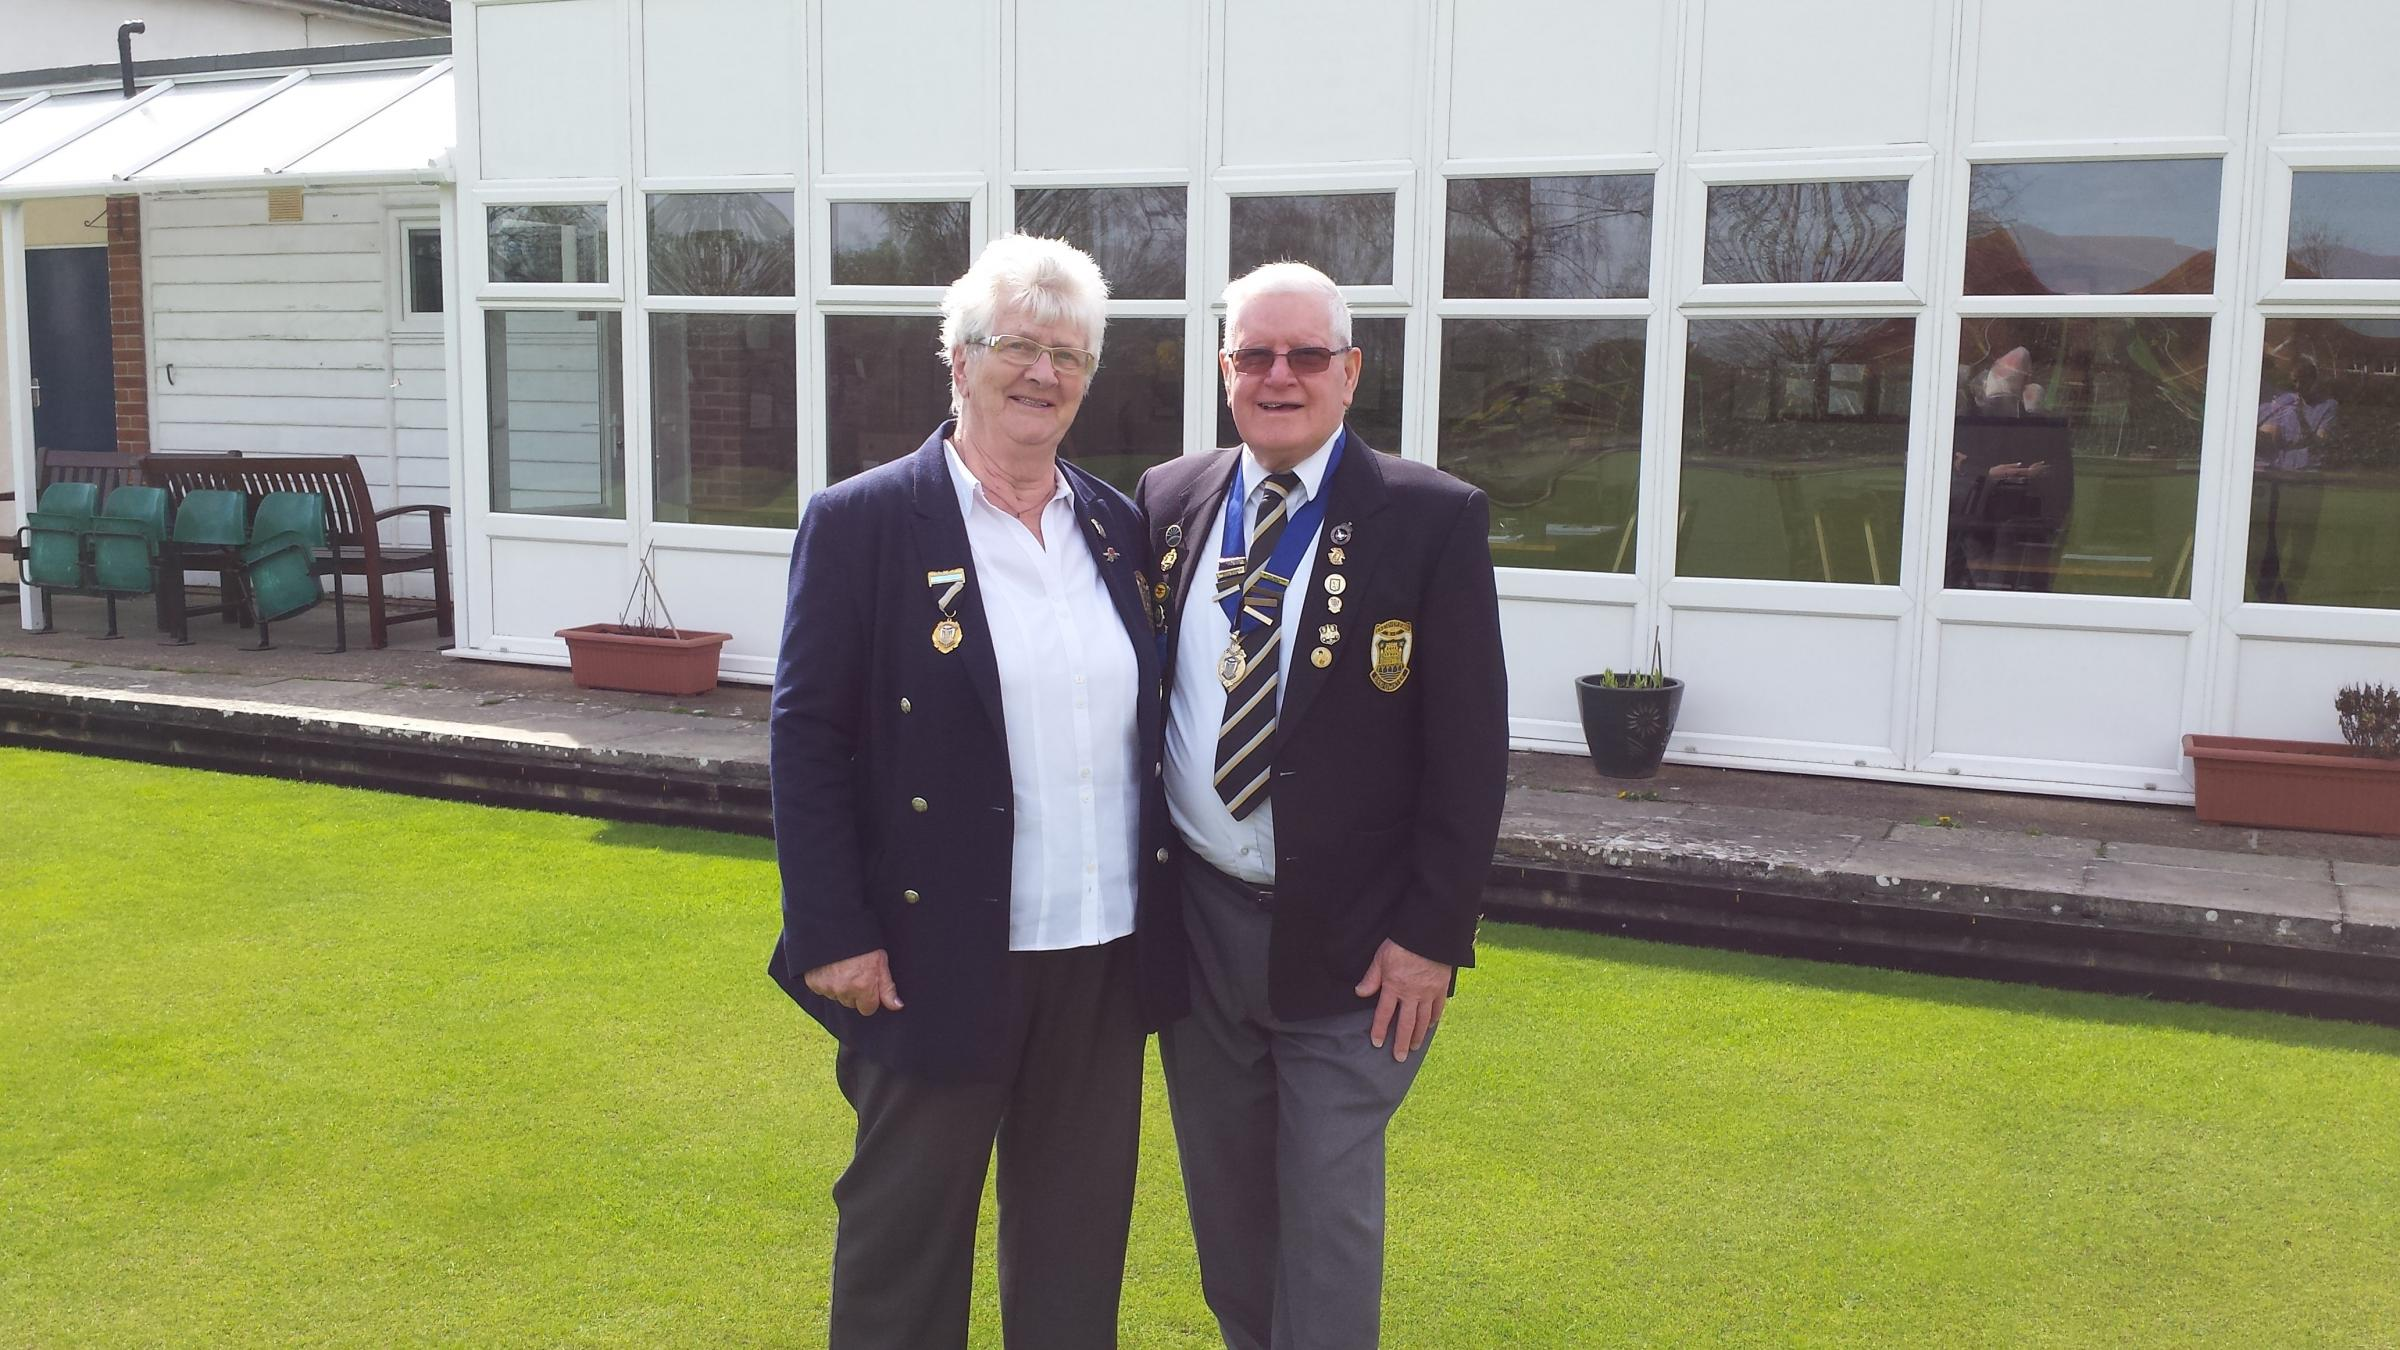 OPEN DAY: Anne Moore and Peter Botting from Eastover Bowls Club want to see more people playing